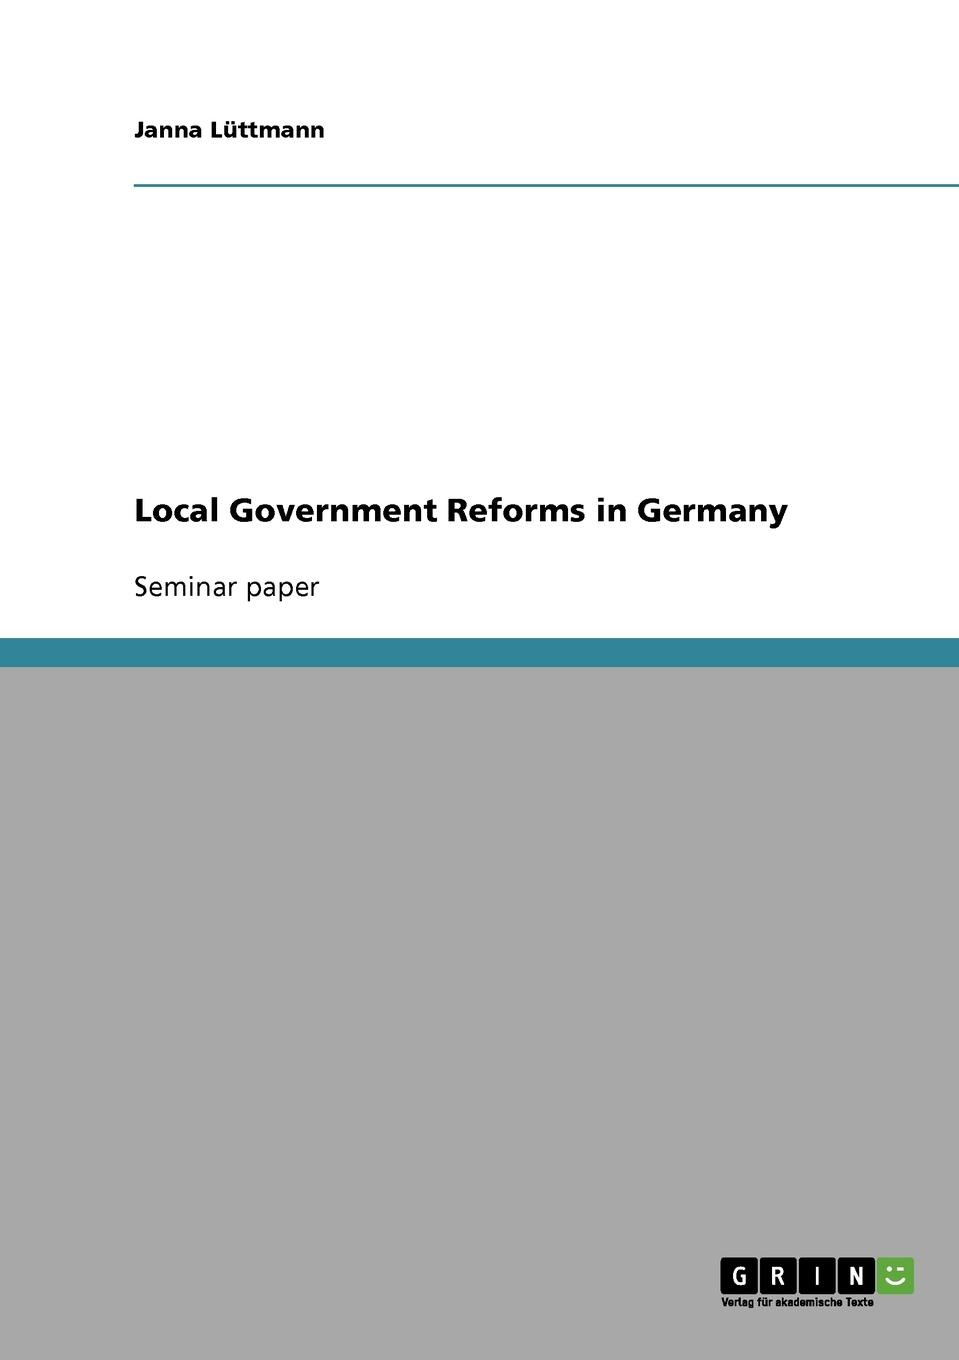 Janna Lüttmann Local Government Reforms in Germany veronika gaßner the united kingdom and the european migrant crisis 2015 16 public dialogue and government action